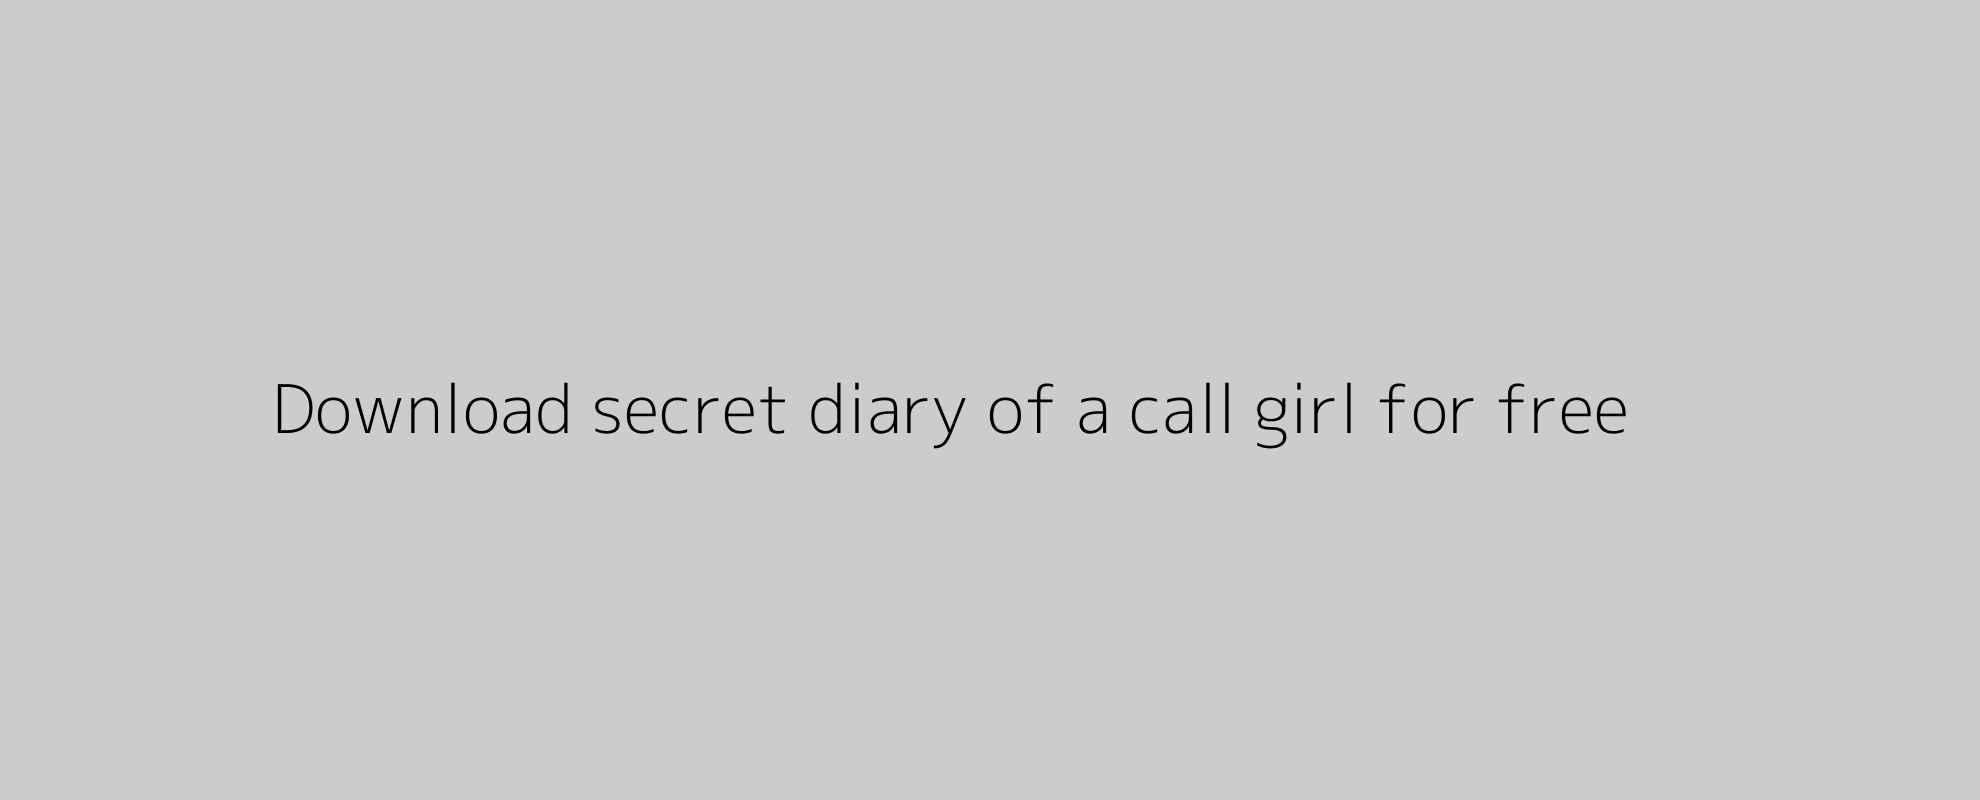 Download secret diary of a call girl for free